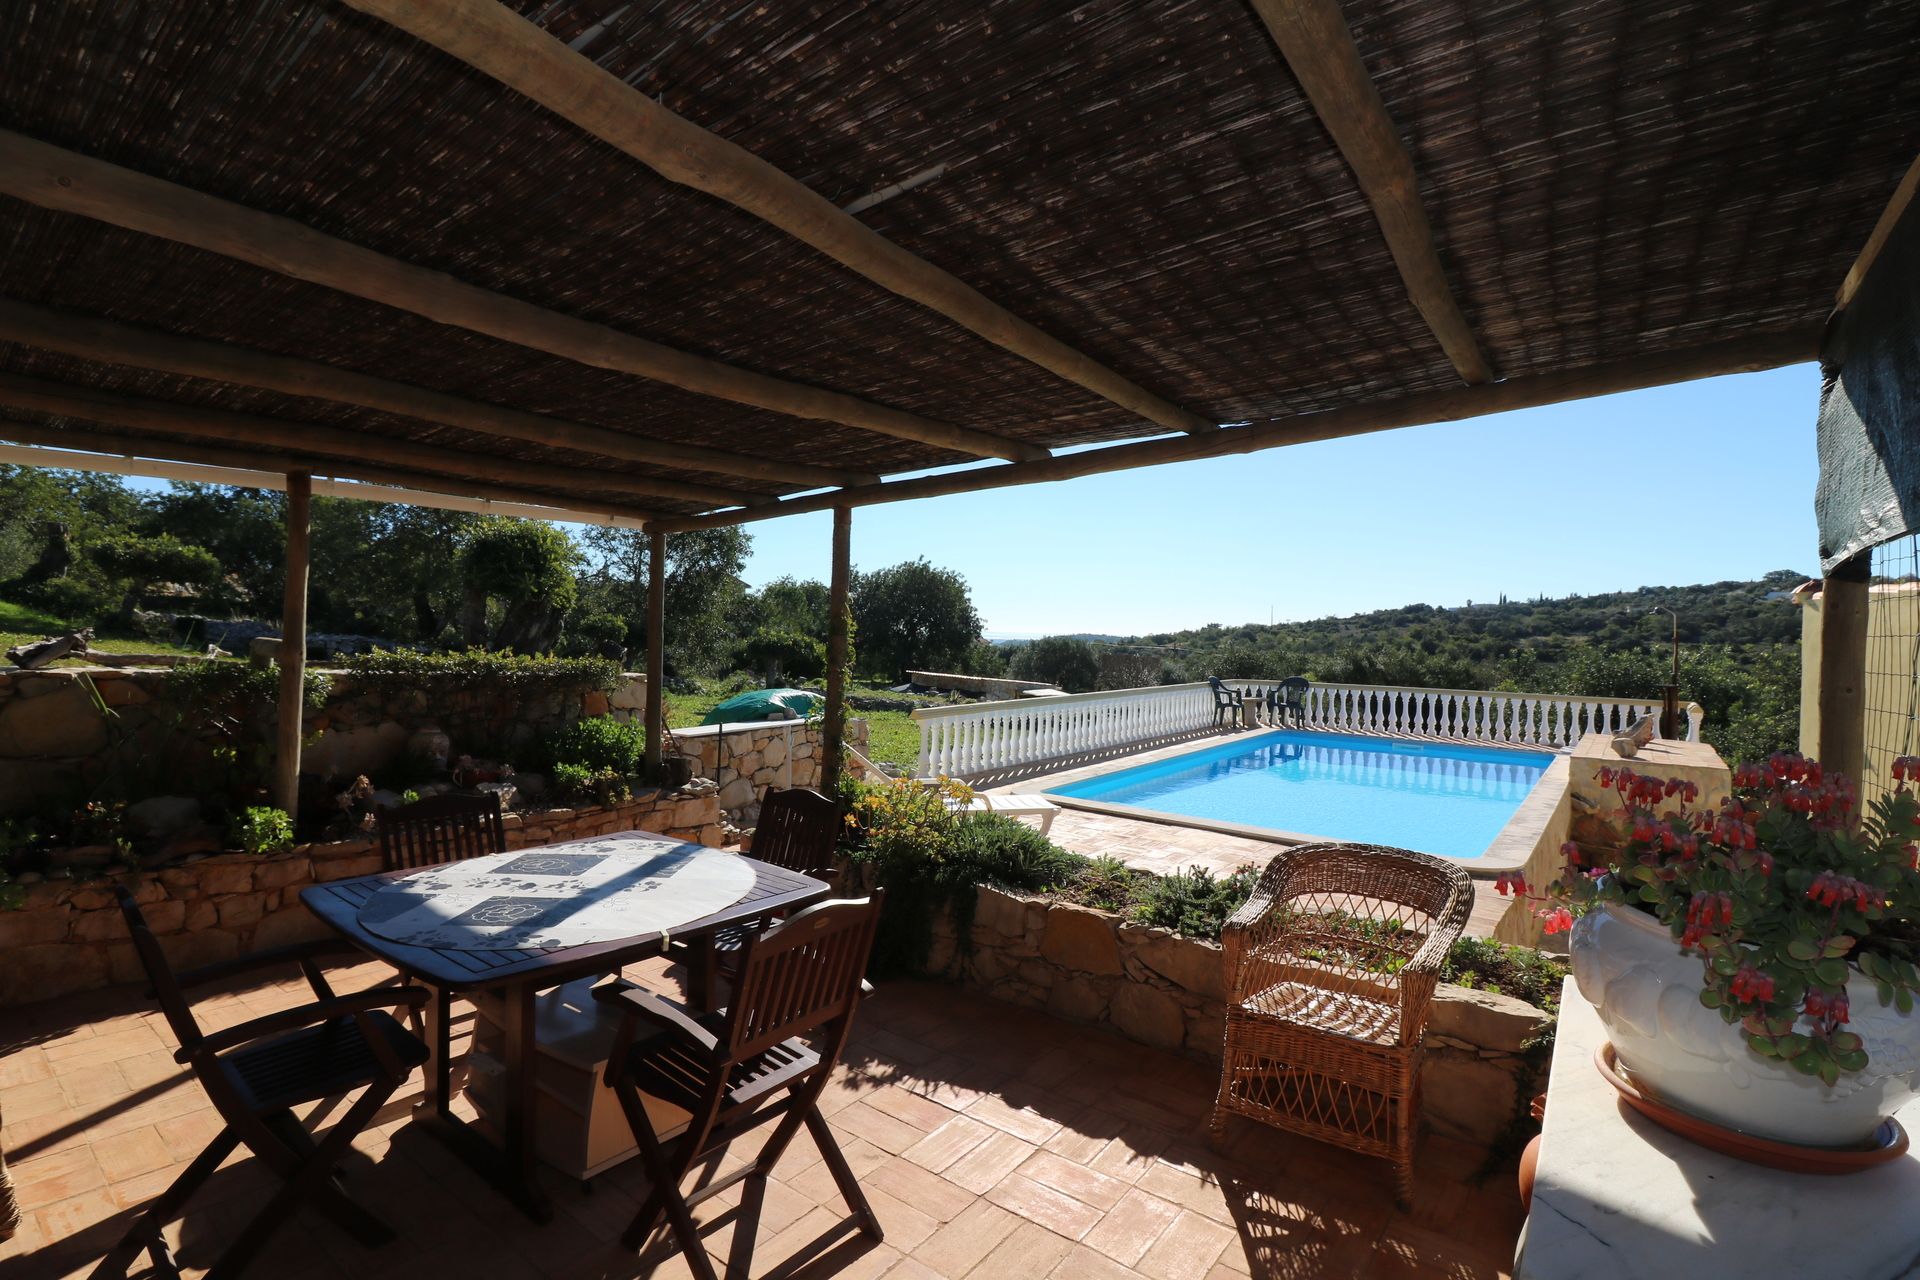 2 Bedroom Bungalow Santa Barbara de Nexe, Central Algarve Ref: JV10246